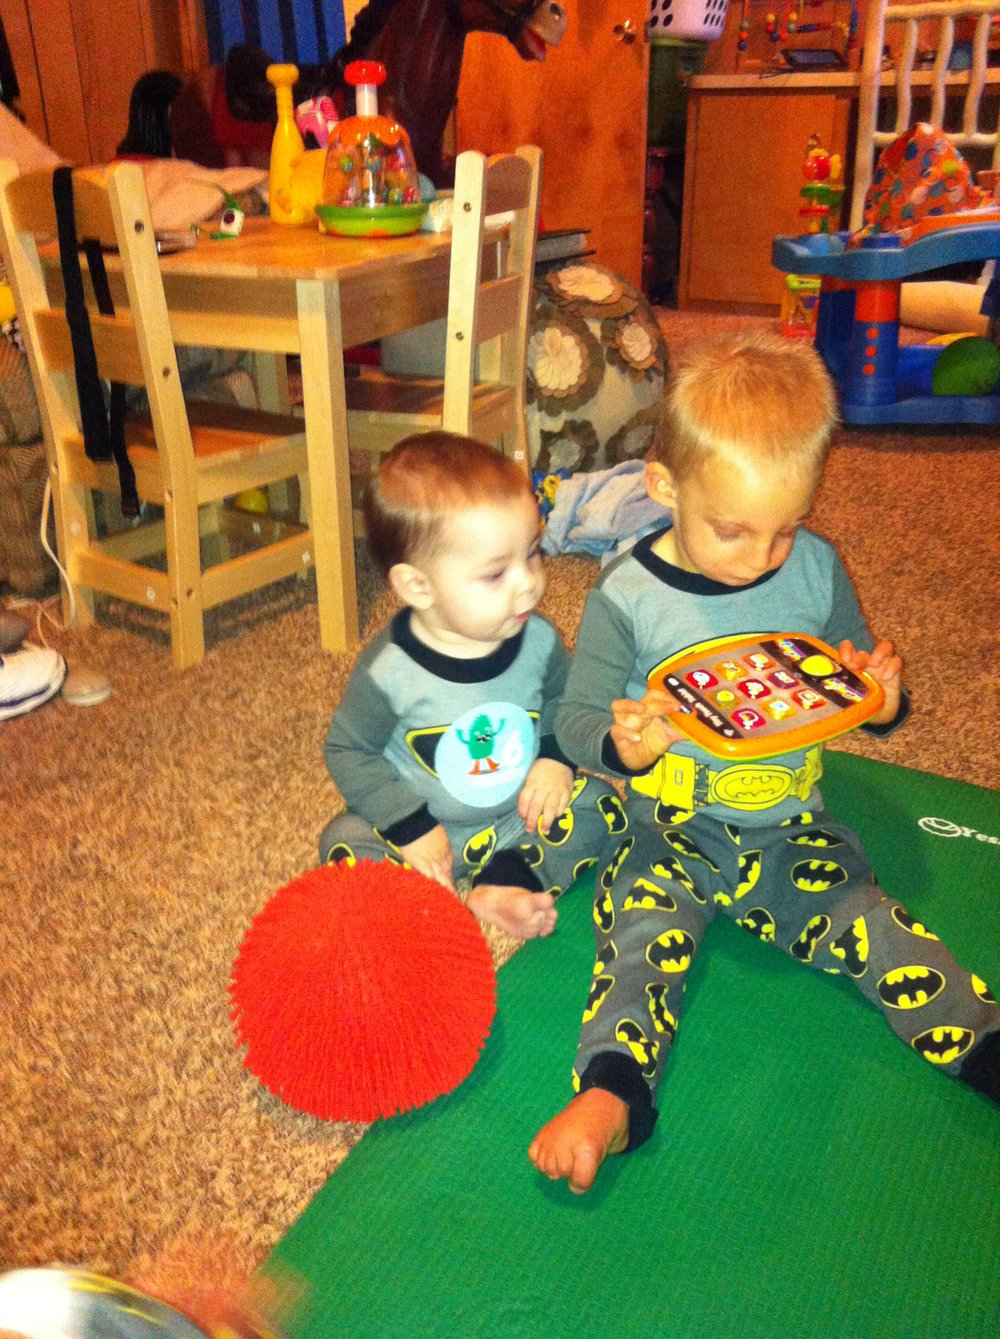 Everett is about to steal that toy. Learning to grab bag was one of Atticus's IFSP goals. ;)